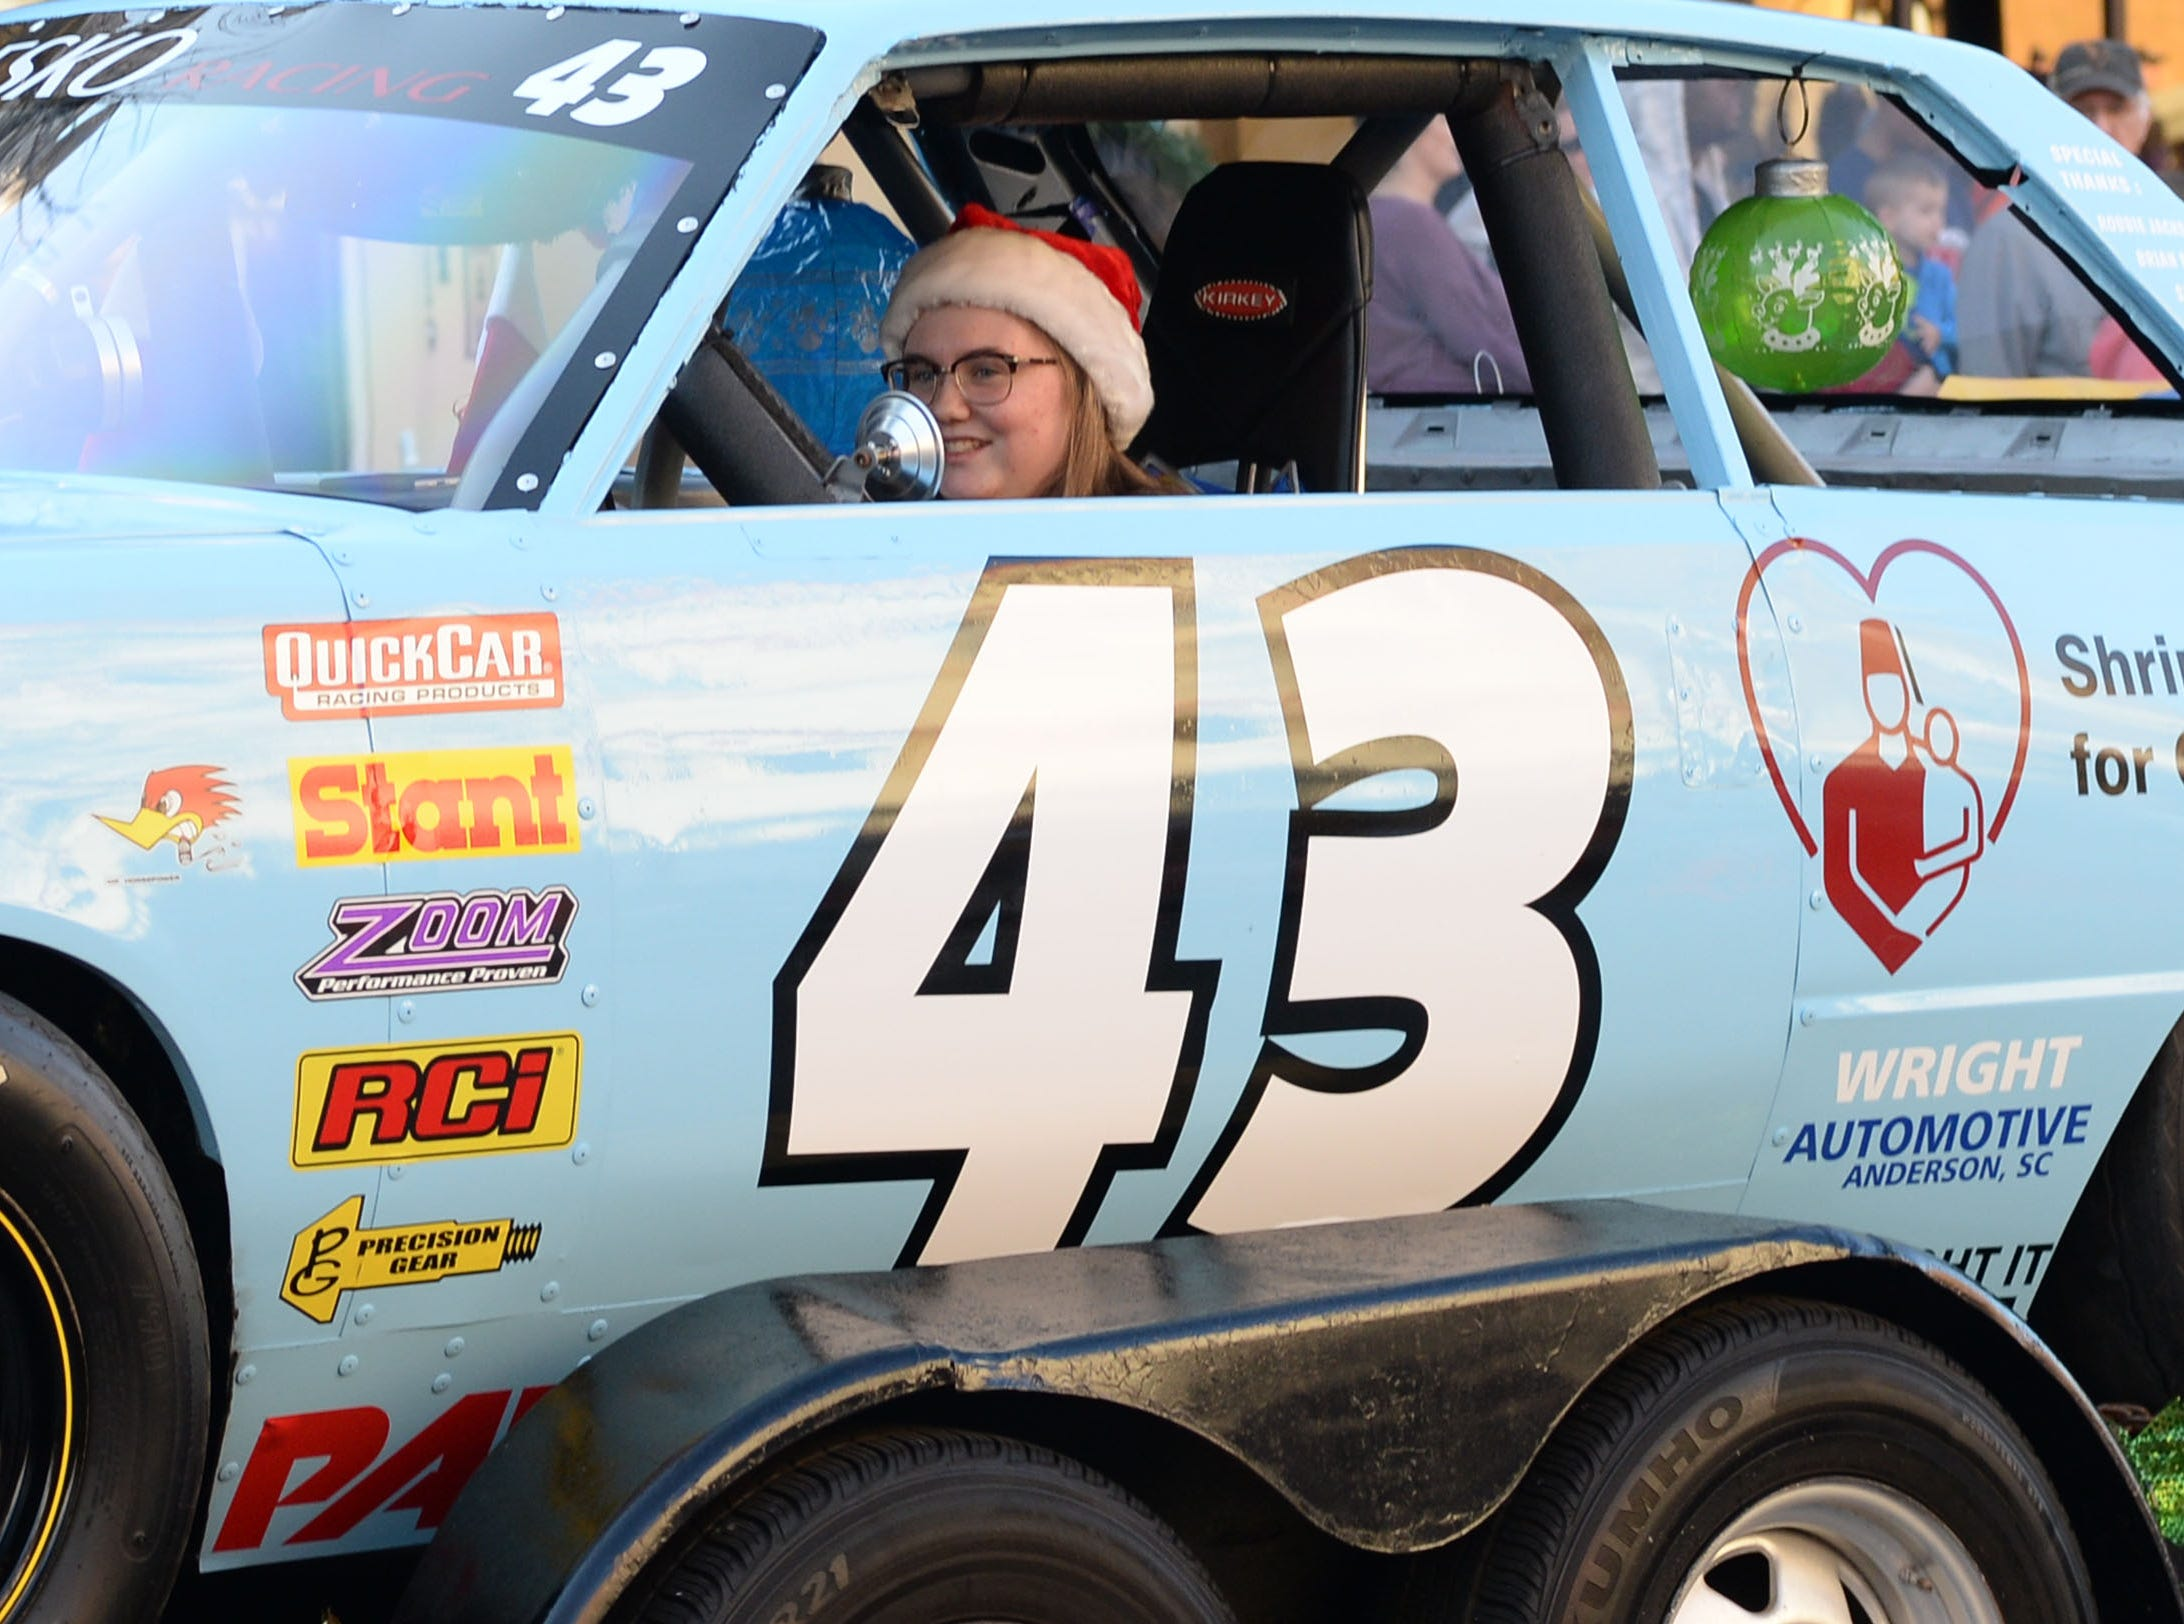 People gather to see community floats and Santa Claus in the City of Anderson Christmas Parade through downtown Sunday, December 2, 2018.